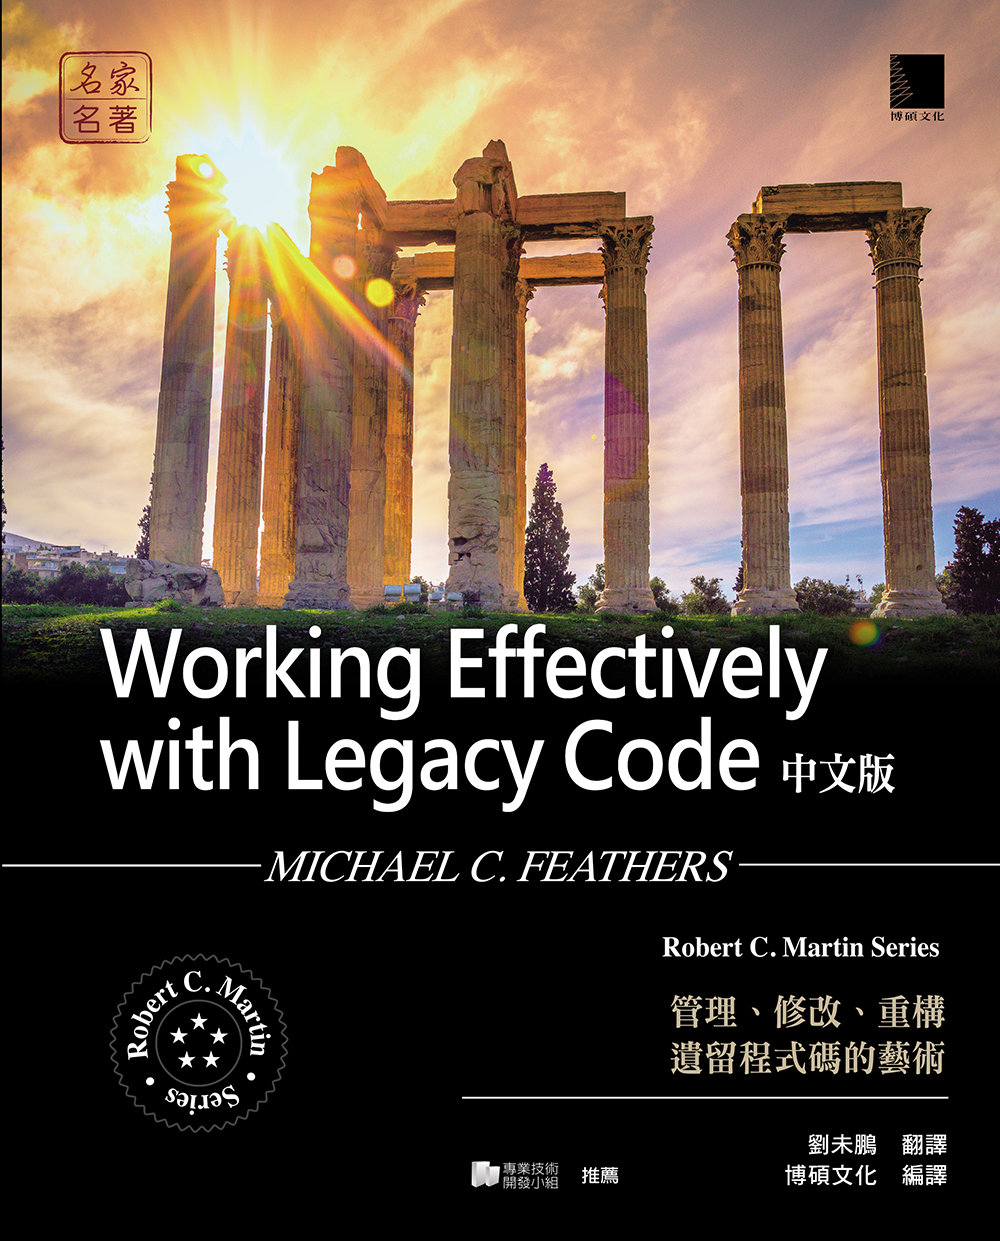 Working Effectively with Legacy Code : 管理、修改、重構遺留程式碼的藝術 (中文版)-preview-1